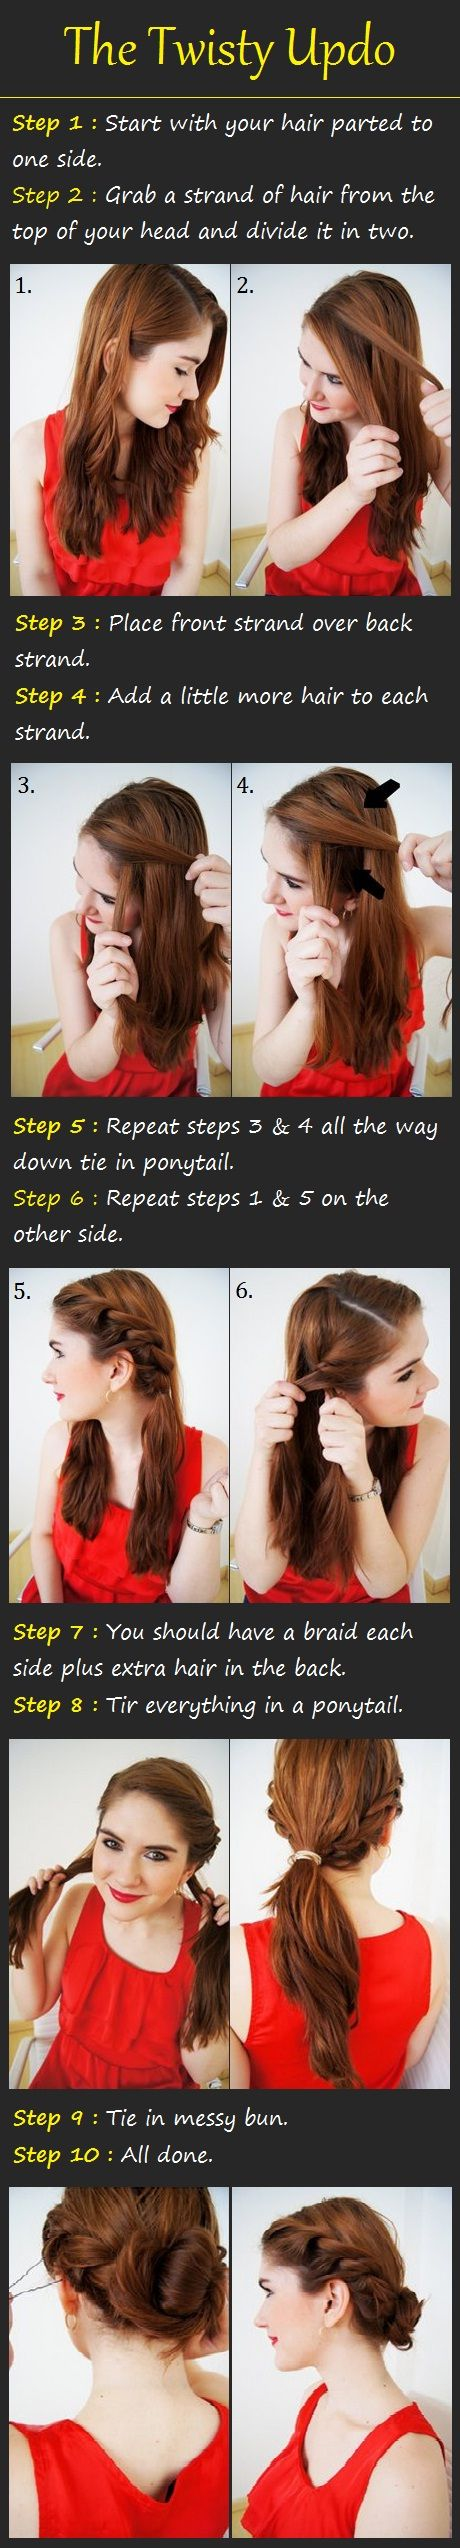 100s of hair tutorials! - The Twisty Updo Tutorial